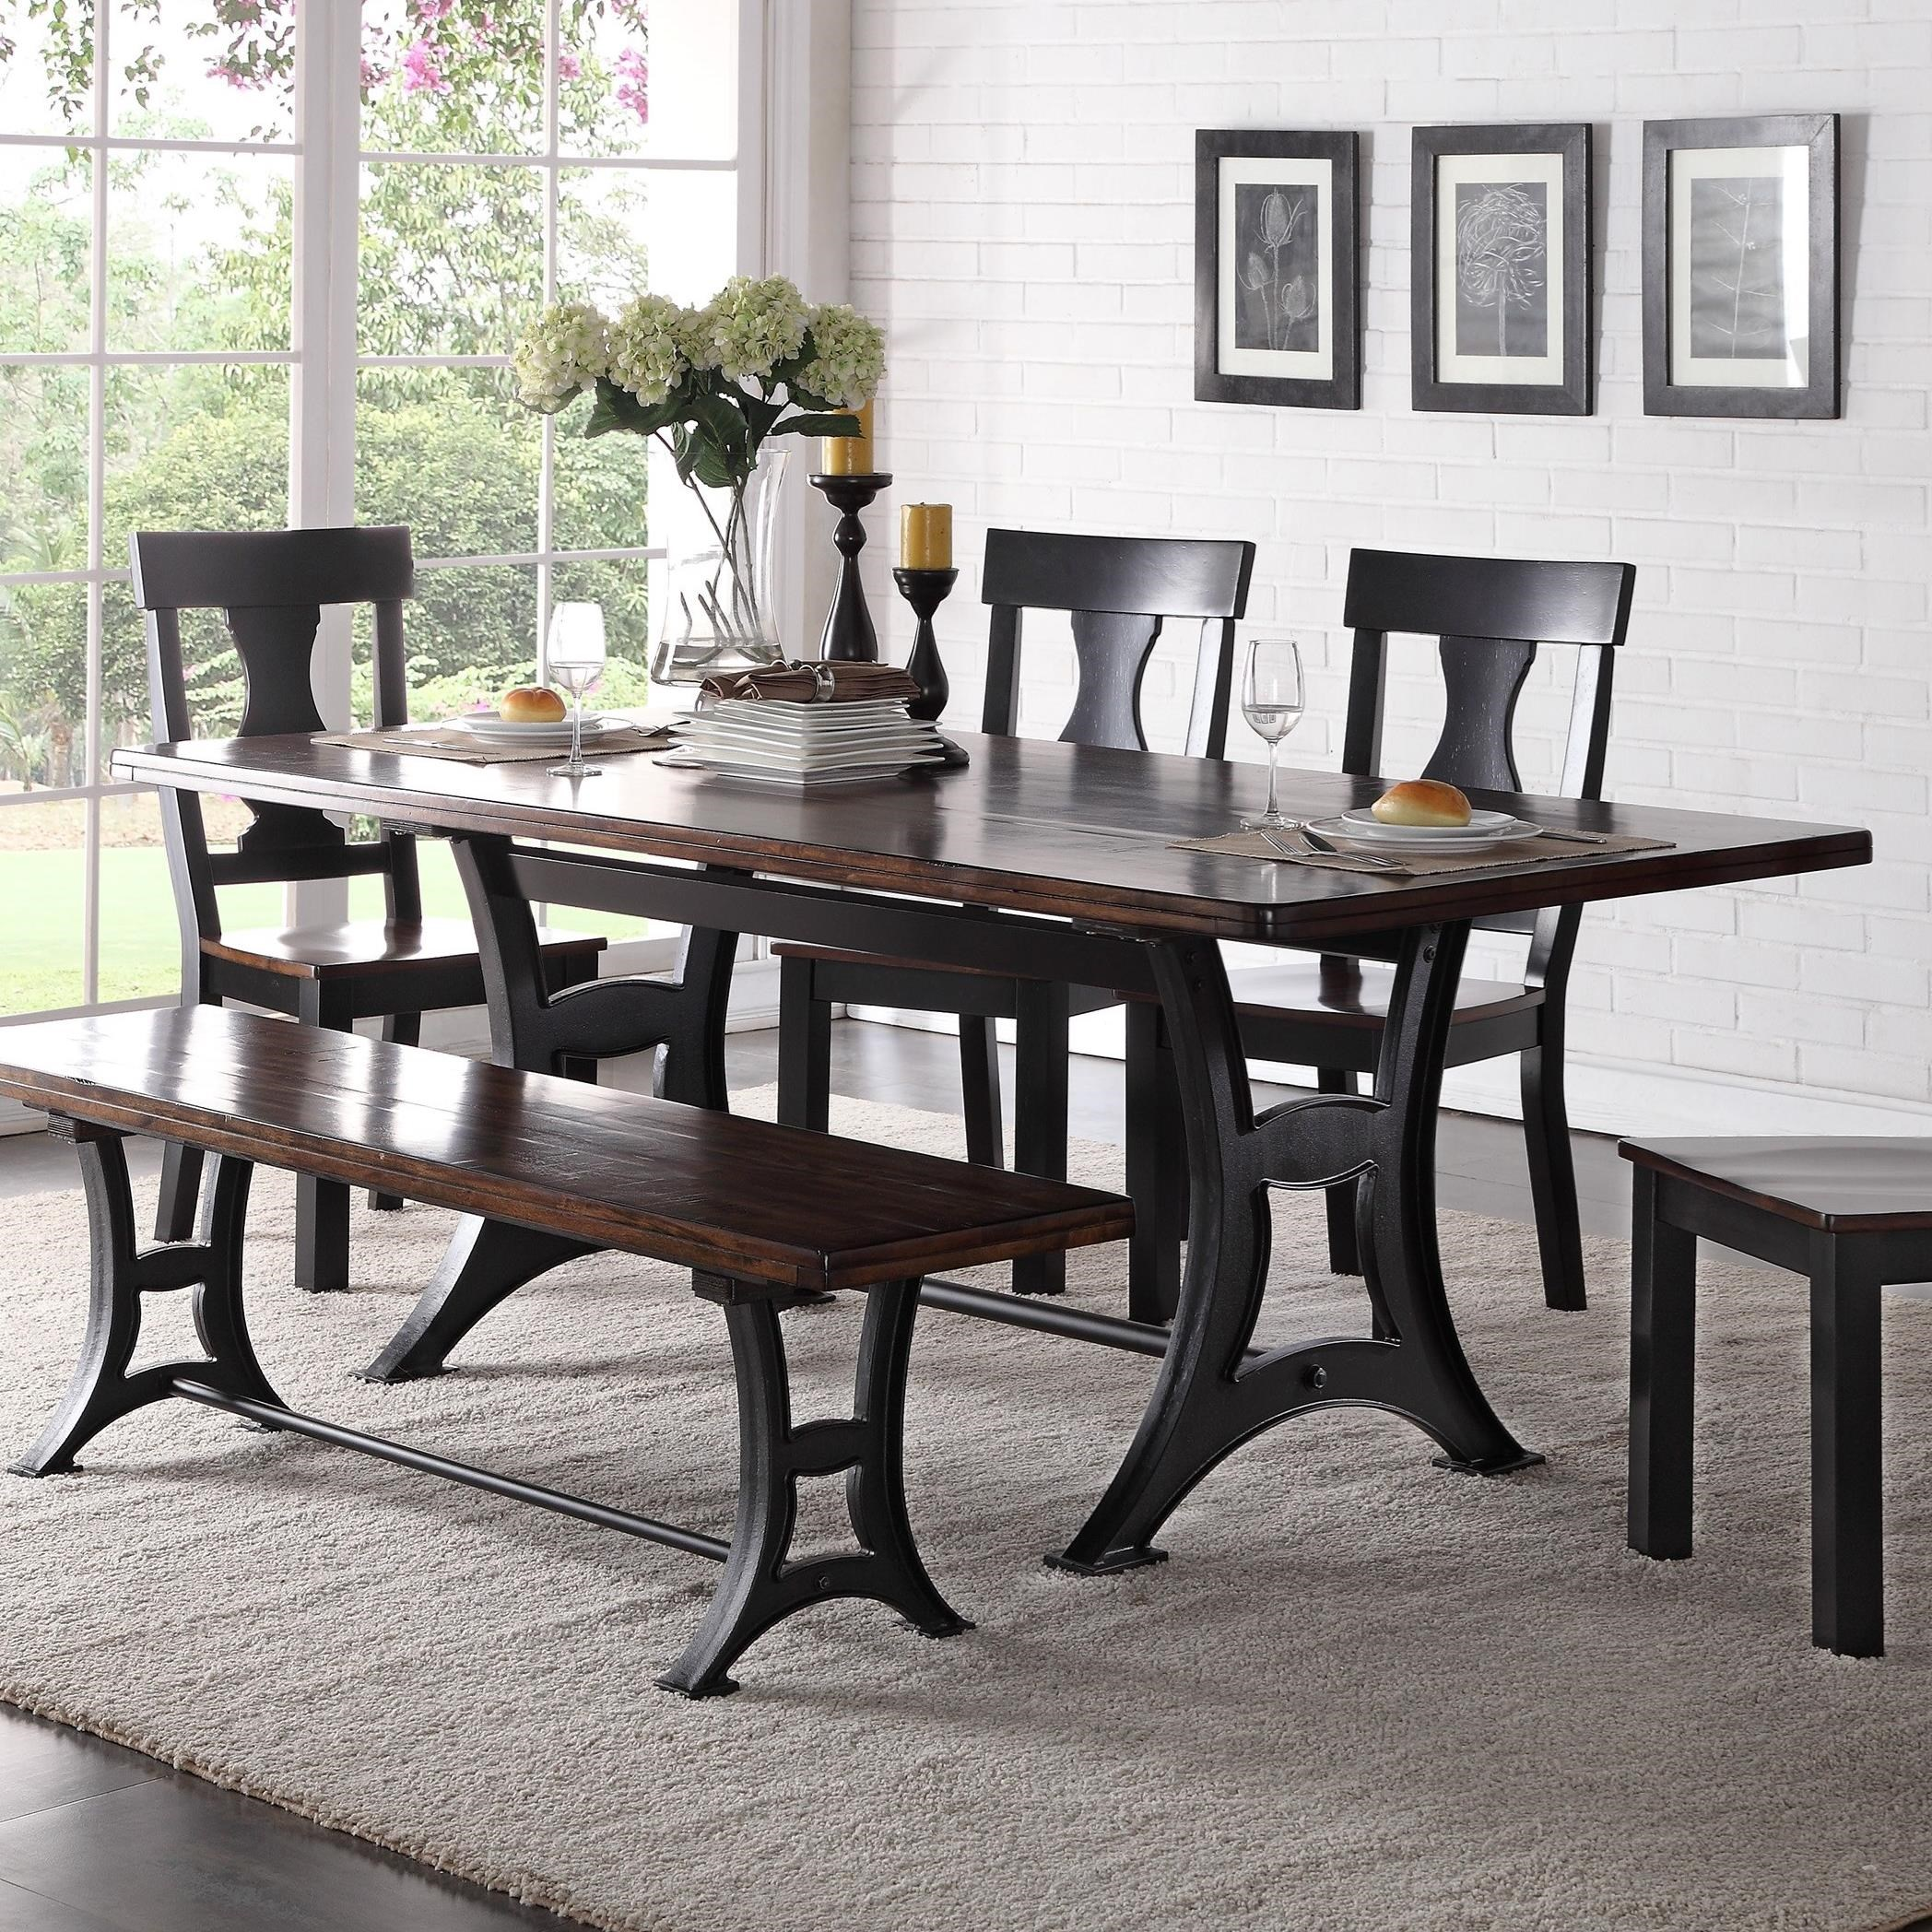 Crown mark astor industrial dining table with trestle base for Astor dining table